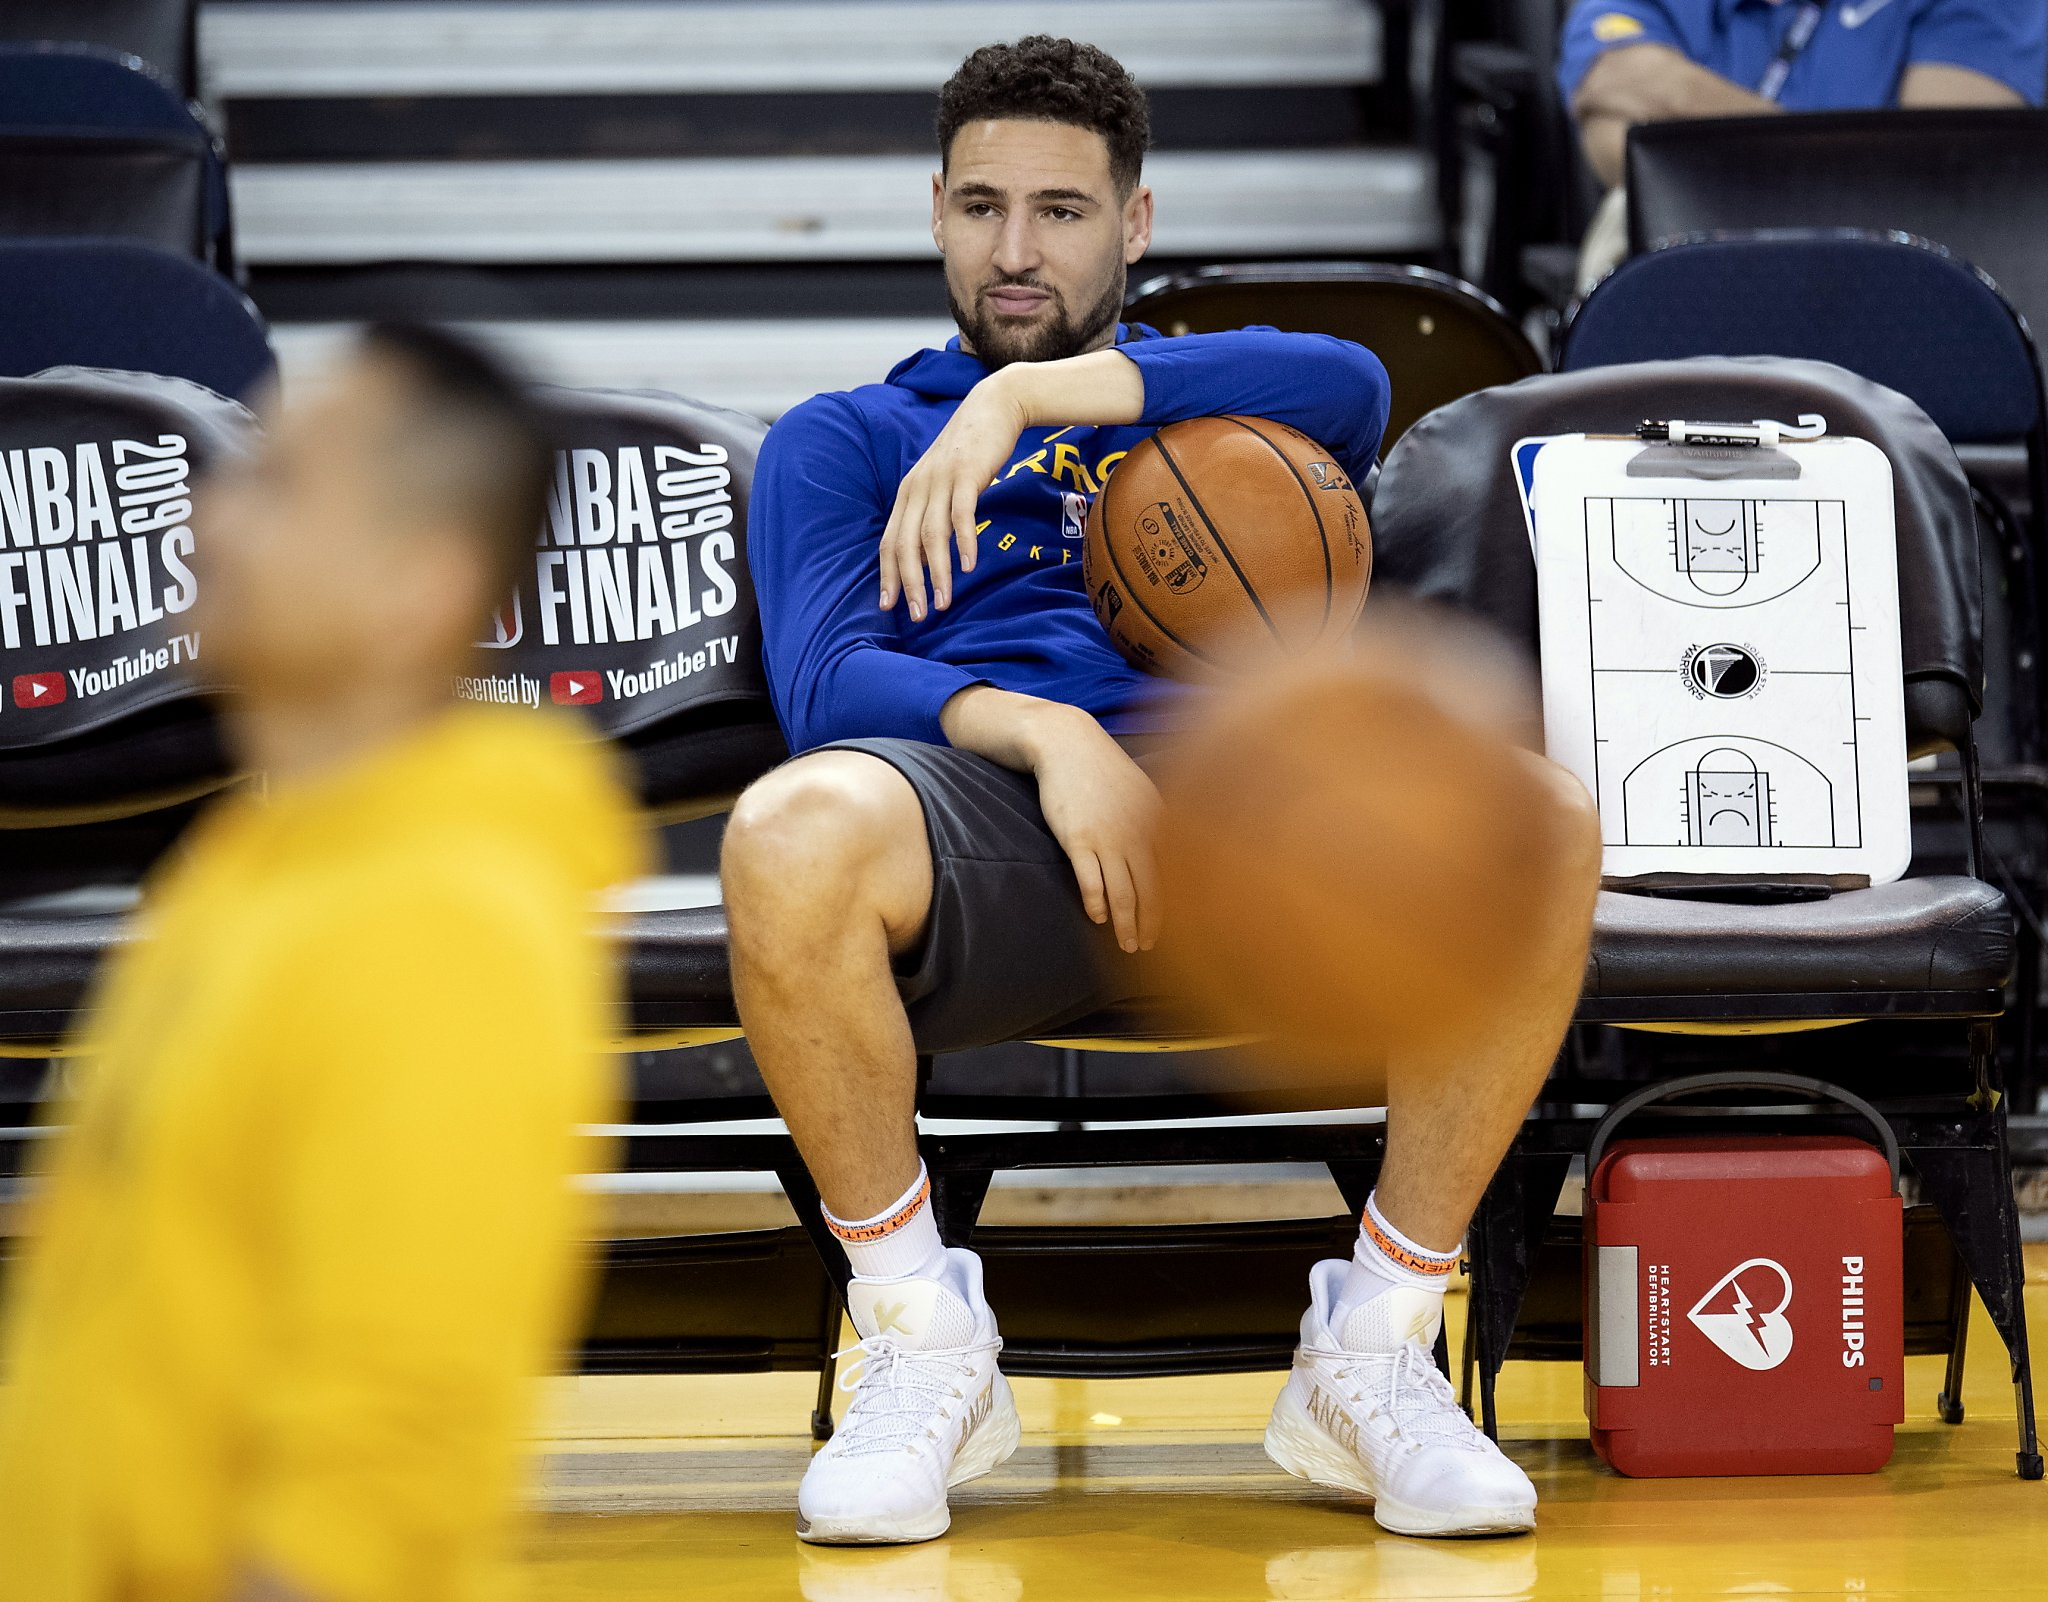 Warriors' Klay Thompson undergoes surgery to repair torn Achilles - San Francisco Chronicle